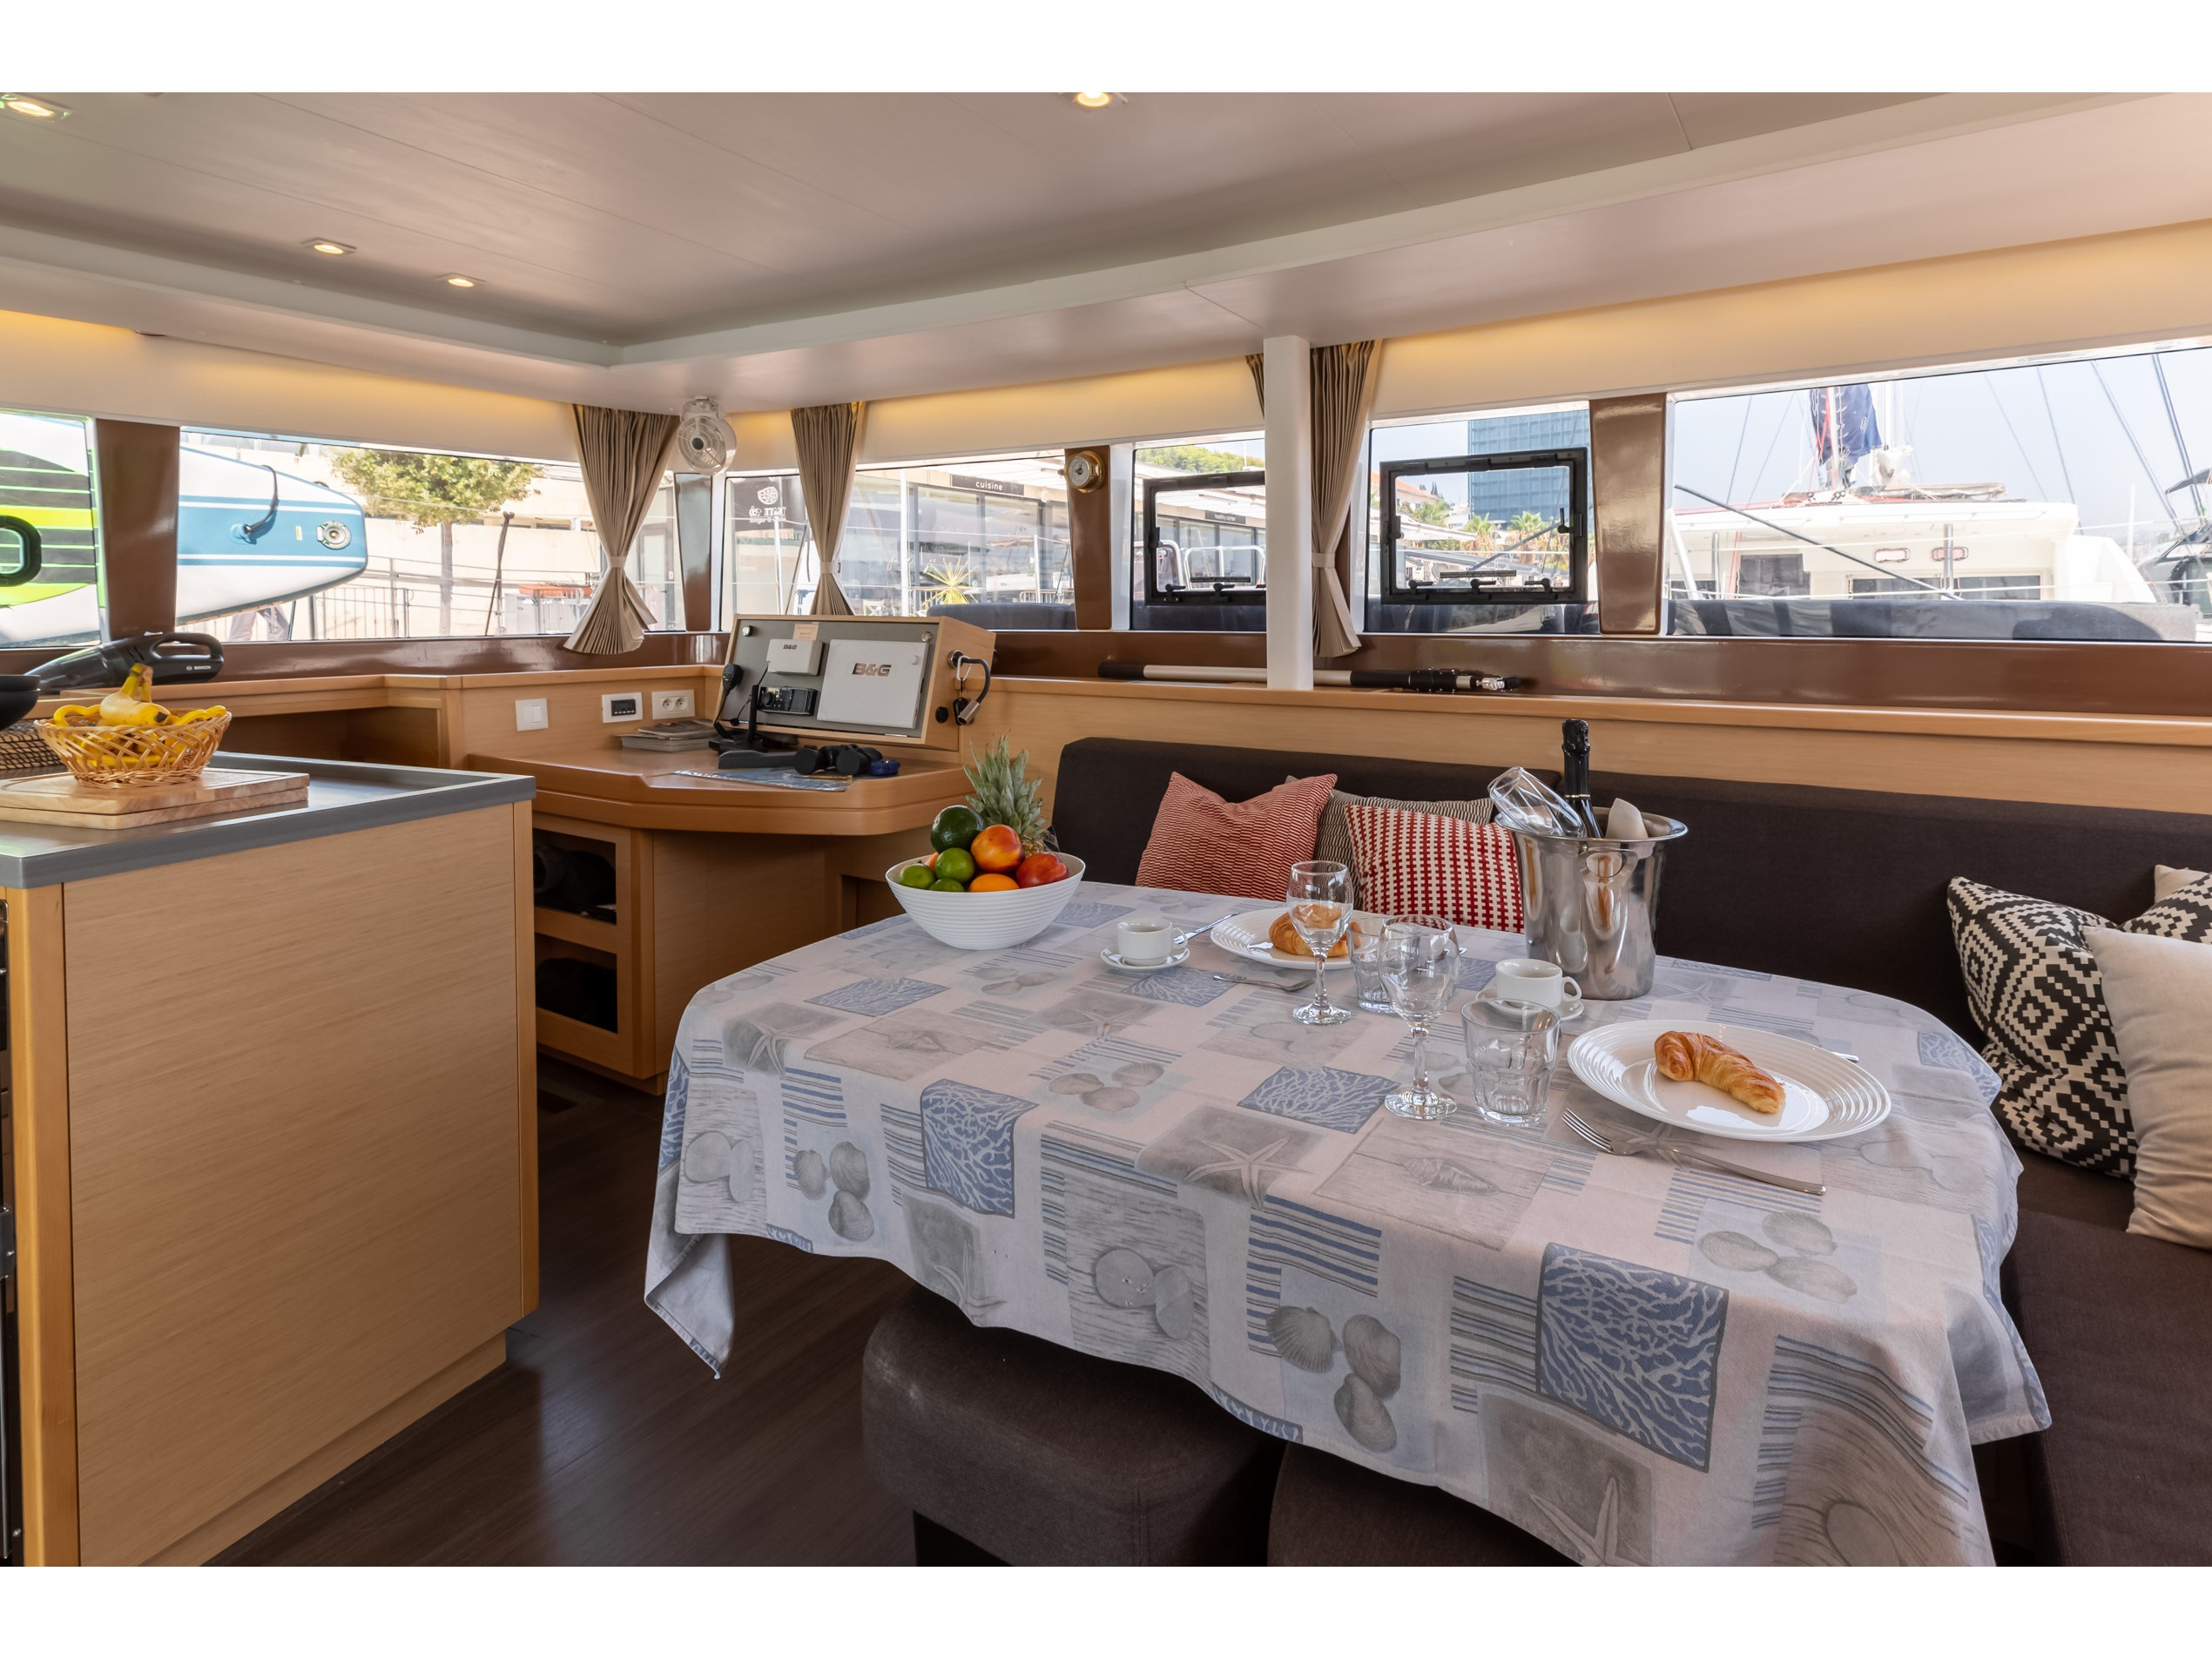 Lagoon 450 F (2017) equipped with generator, A/C ( (PRINCESS KARLA I) Interior image - 20